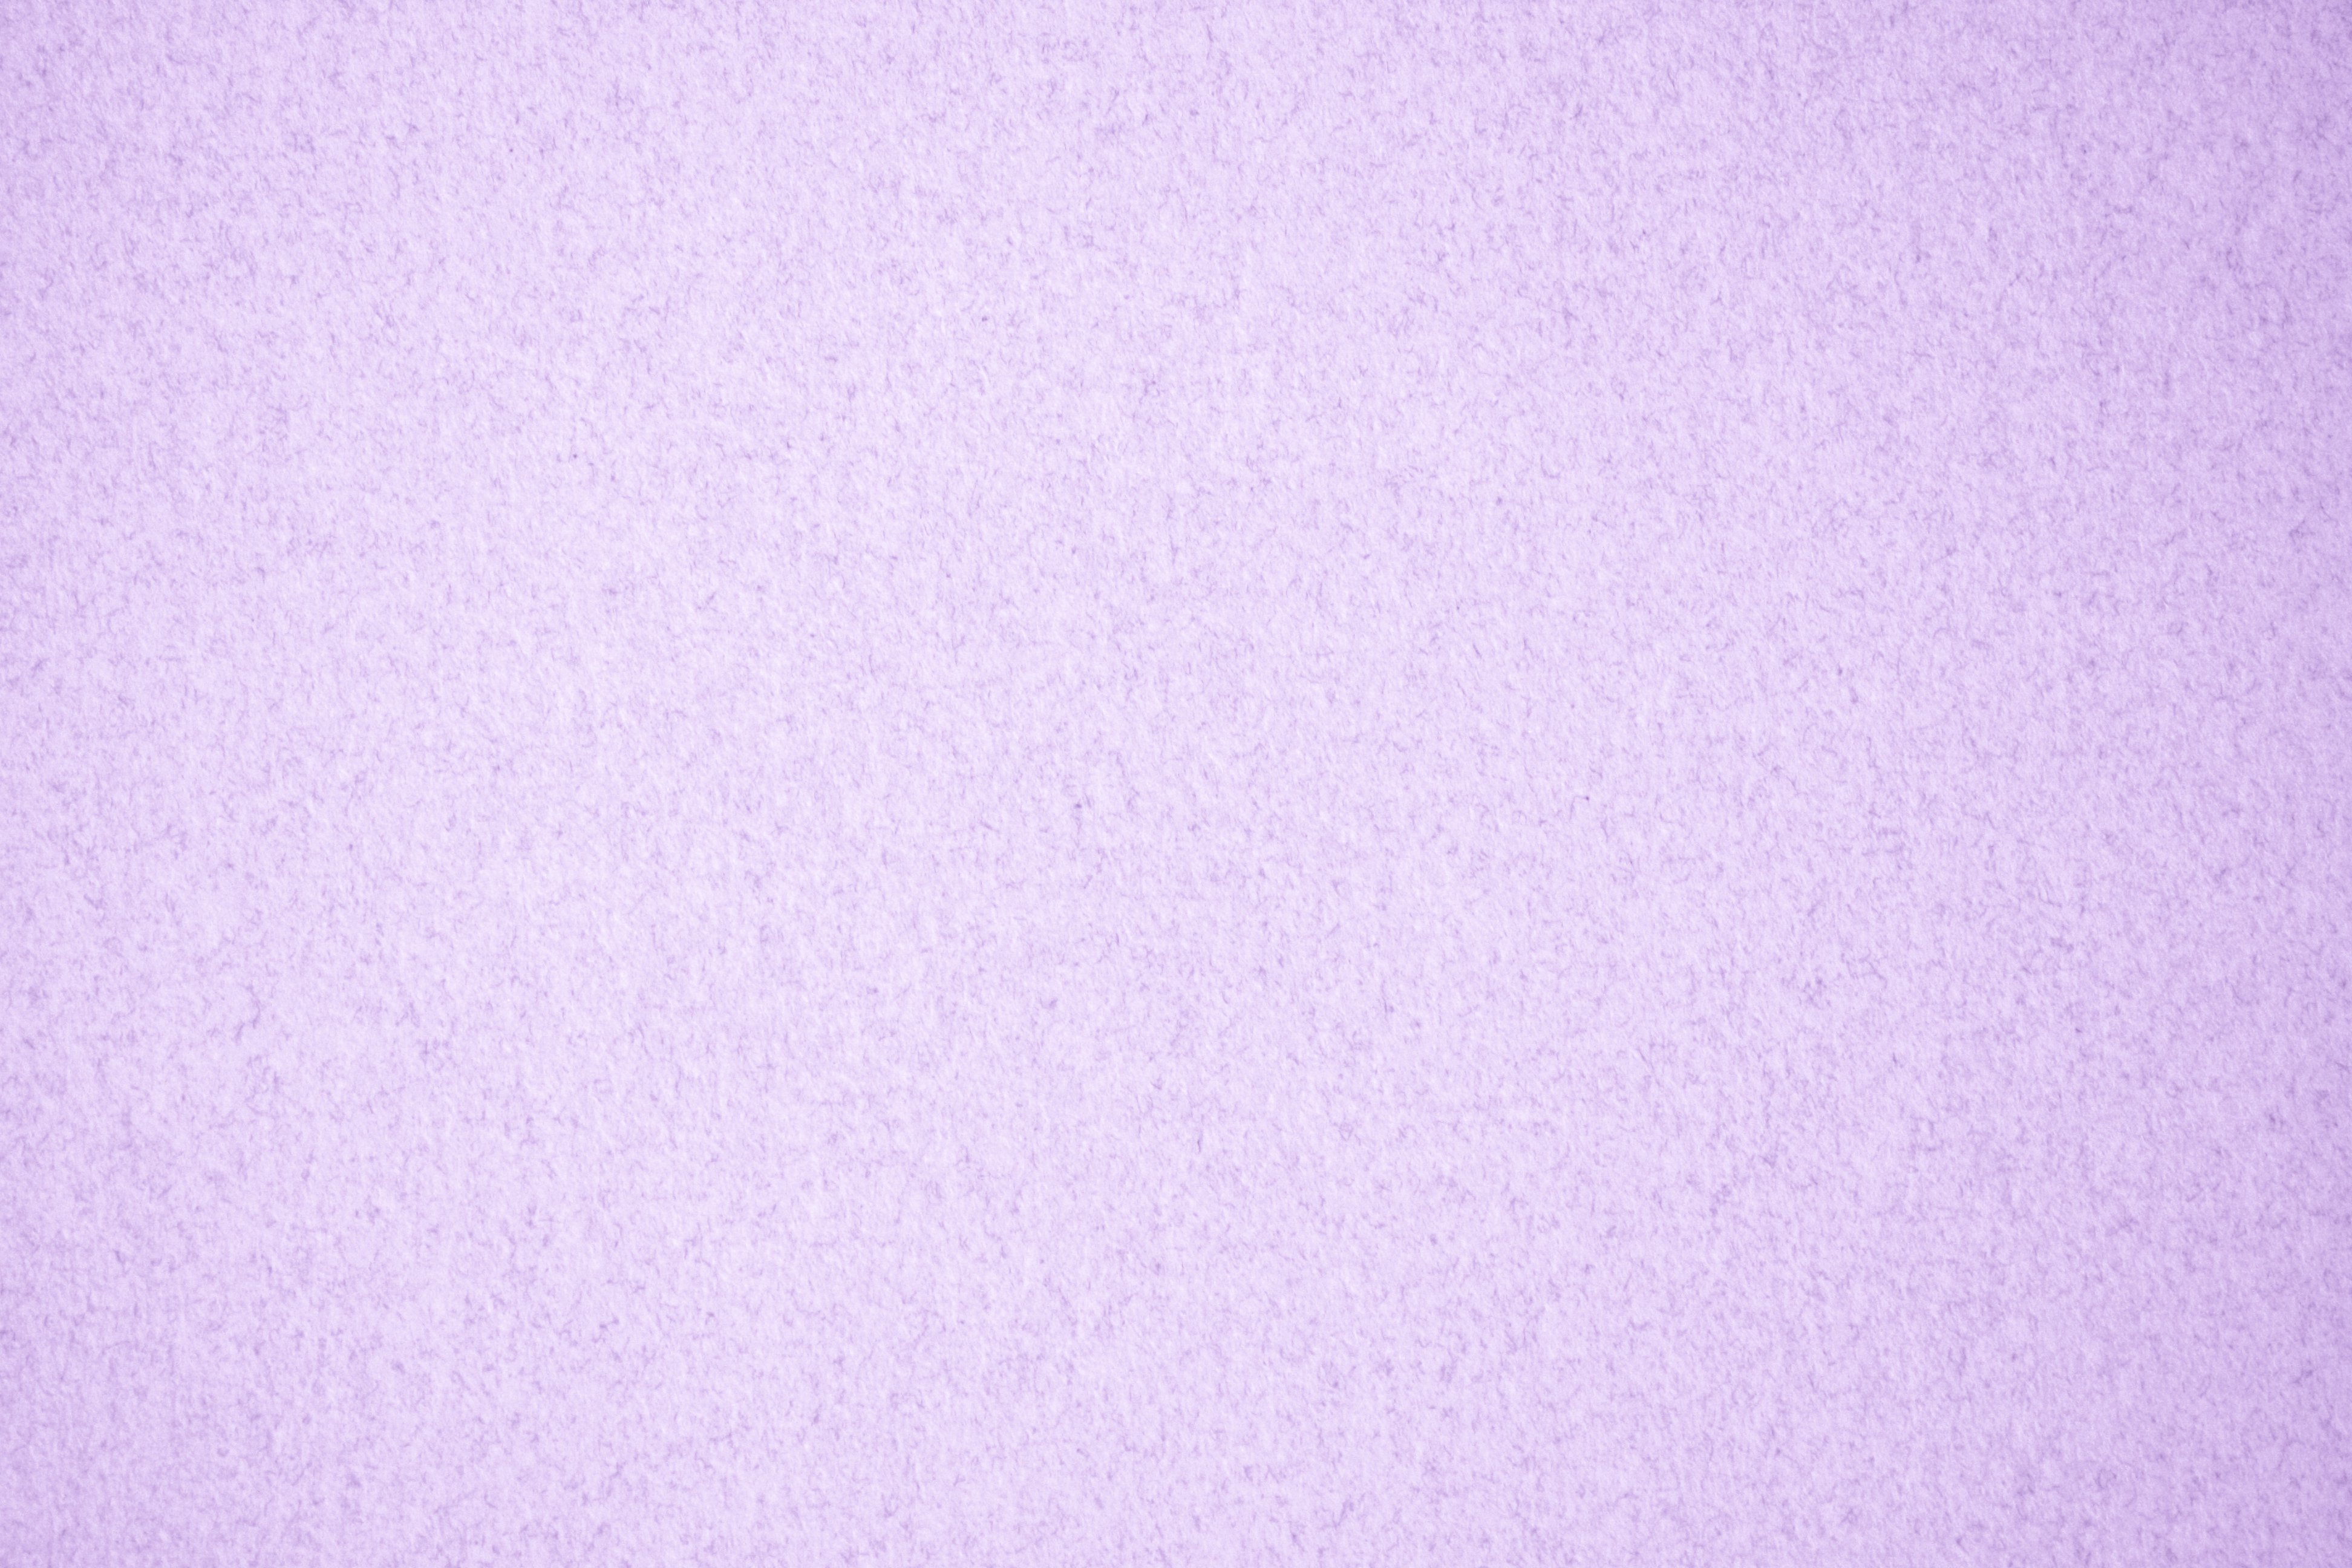 lavender background solid - HD